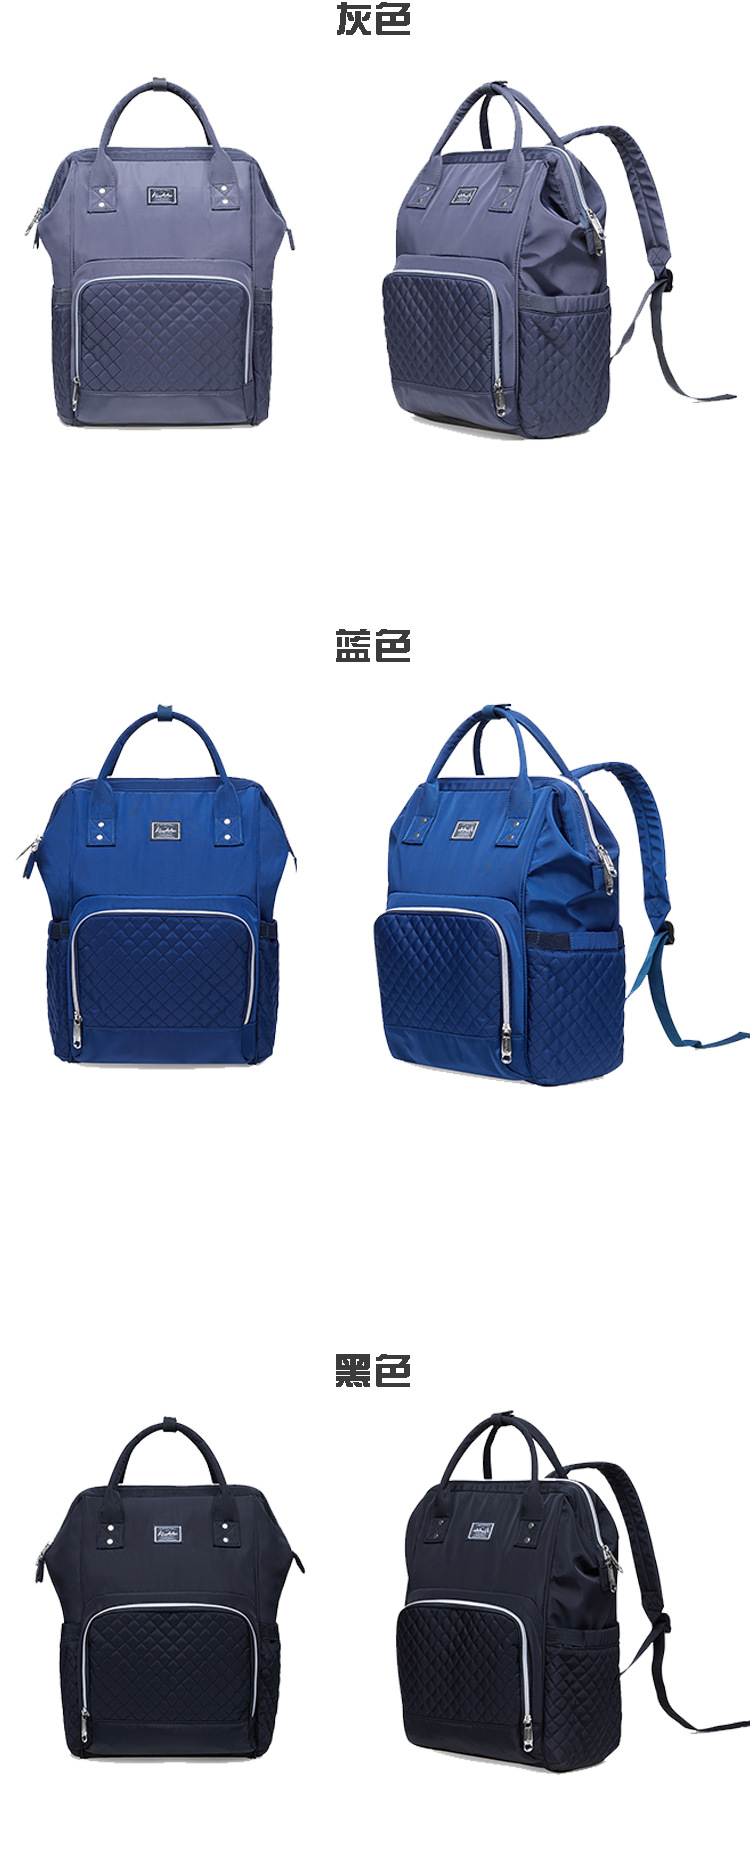 2019 new fashion Diaper bag multi-function Mummy Maternity Nappy Bag Brand Large Capacity Travel Backpack Designer (2)